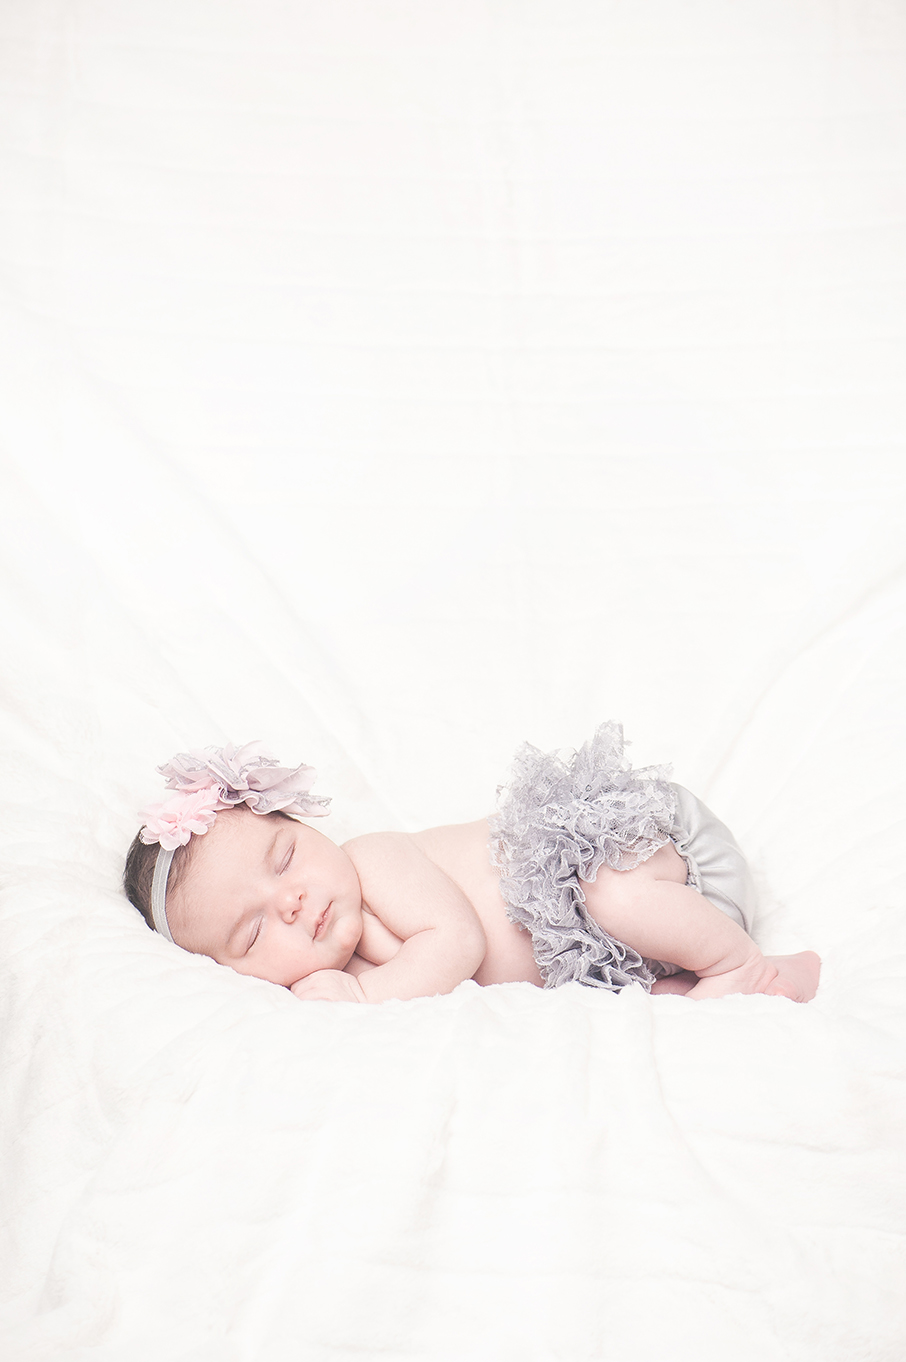 Sophia_NewbornSession-4.jpg